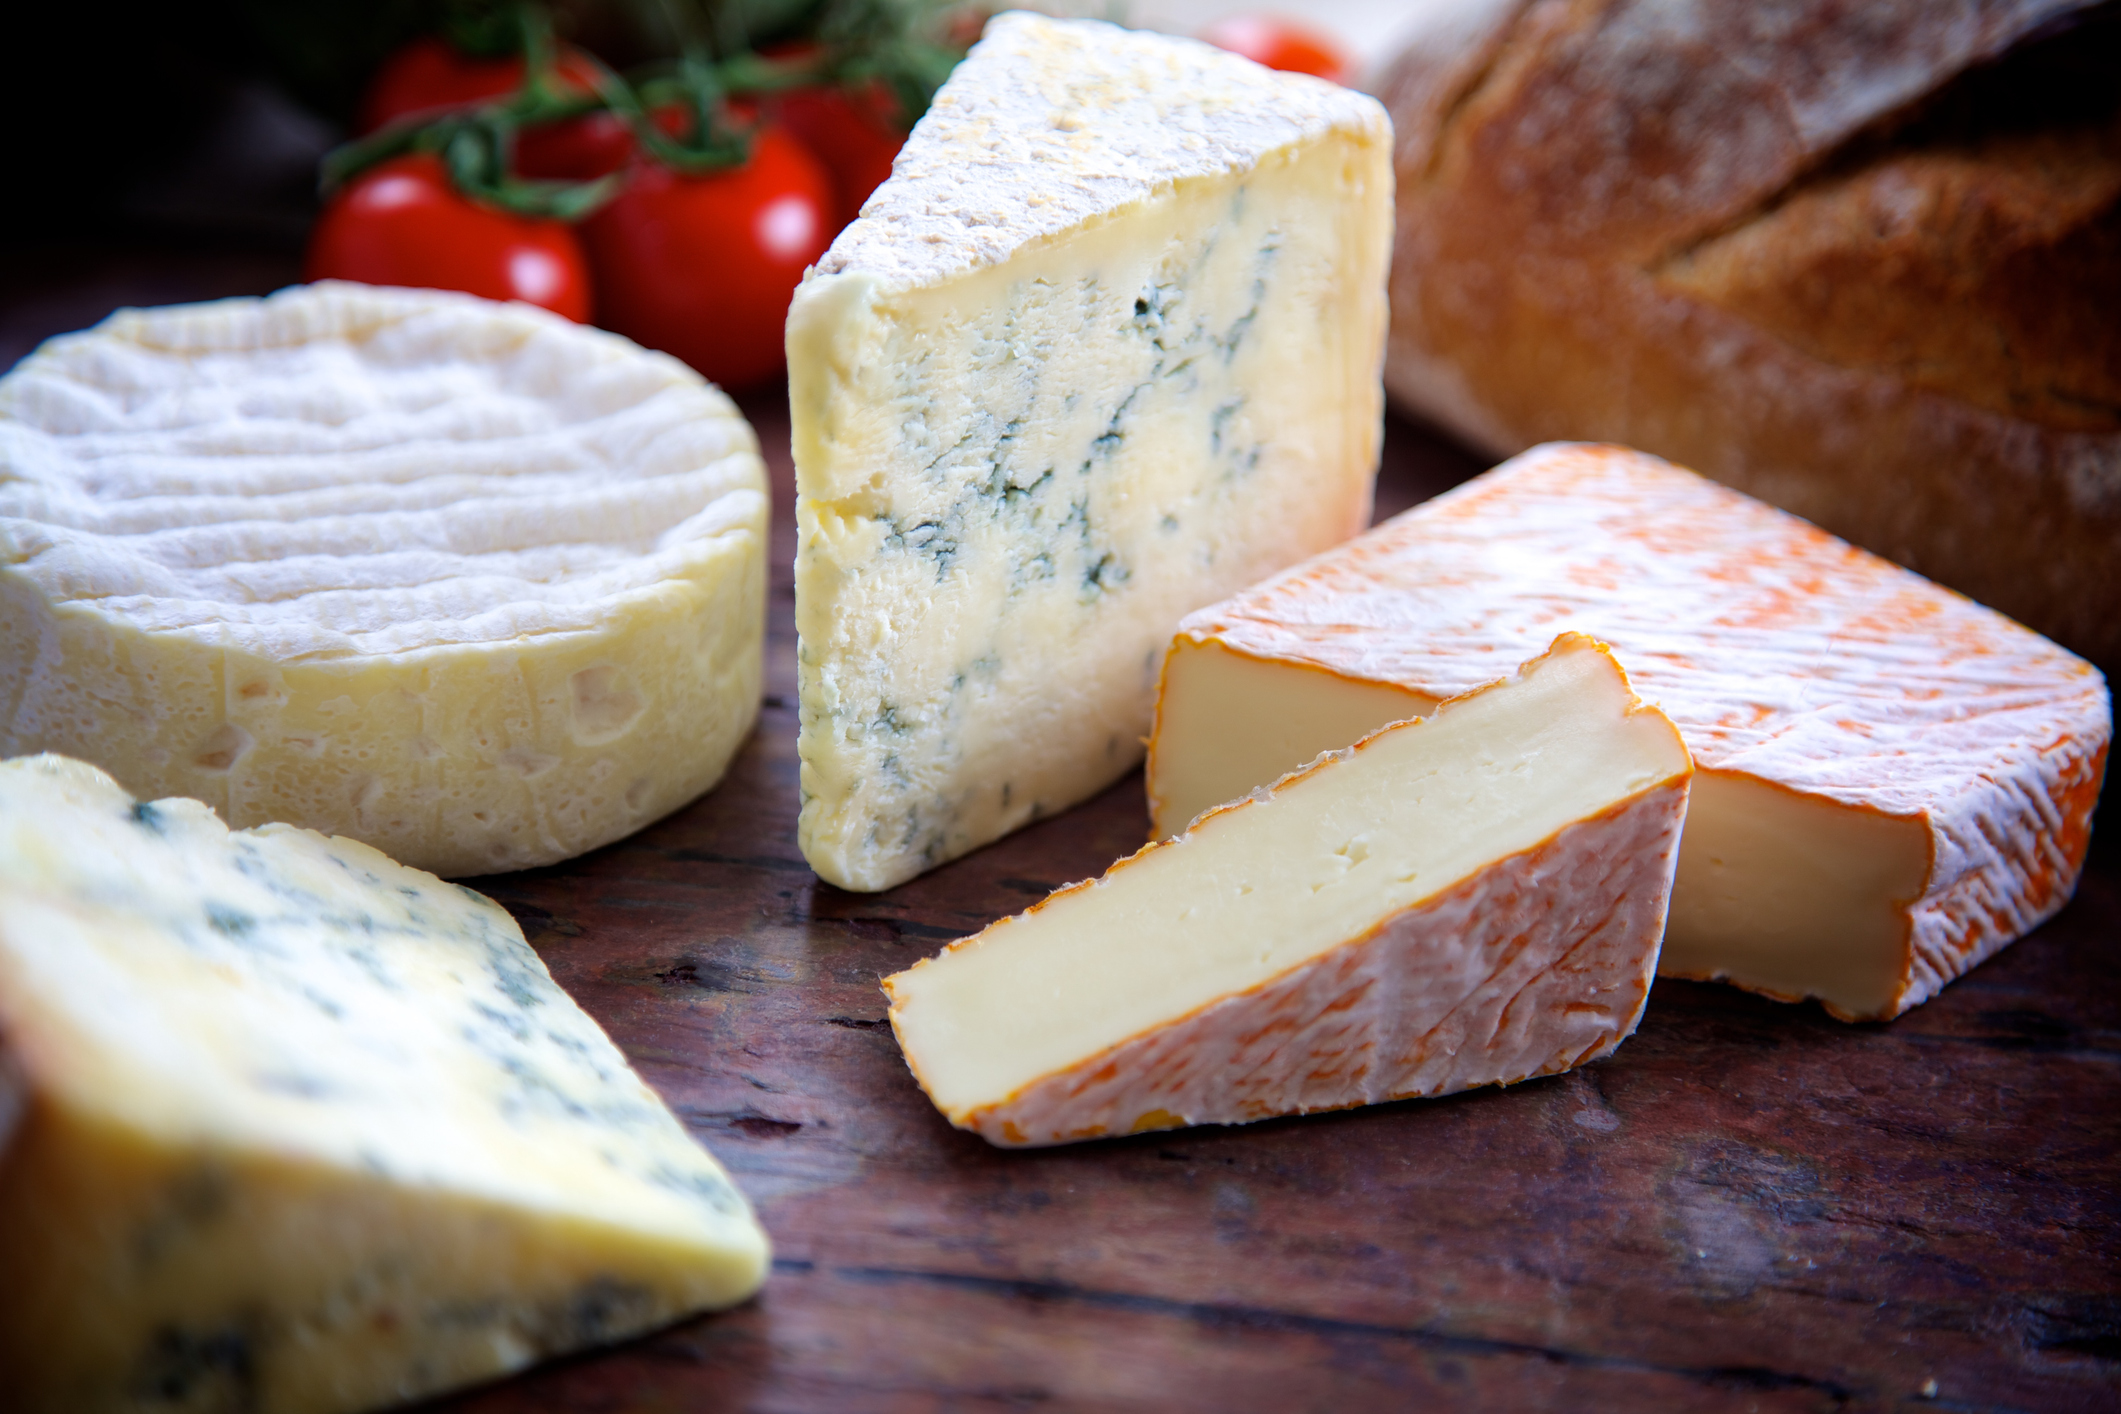 Cheese Brine Clarification - Microfiltration